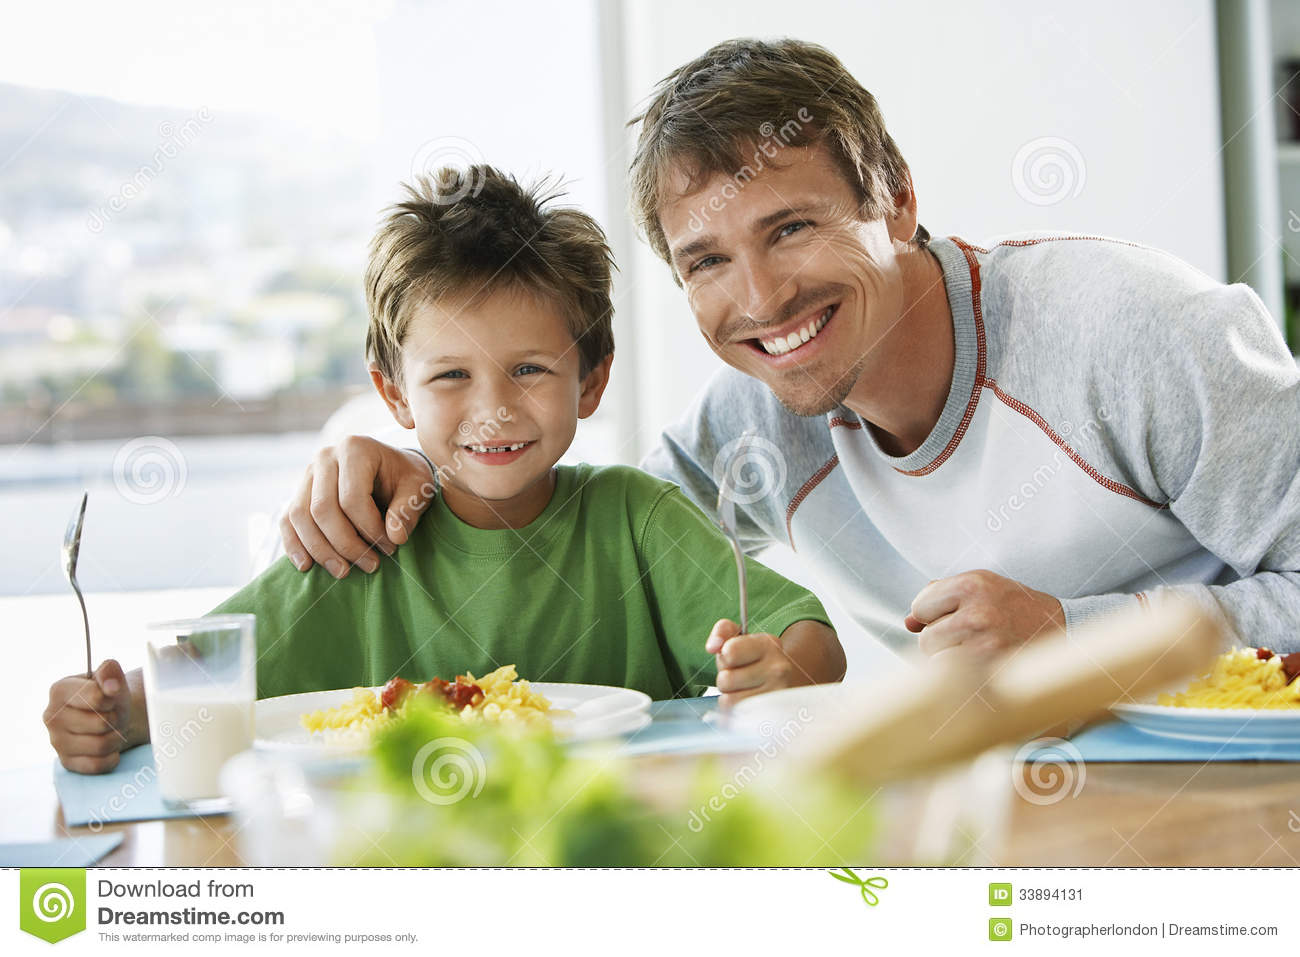 Father And Son Having Breakfast At Table Stock Image  : father son having breakfast table portrait happy together dining 33894131 from www.dreamstime.com size 1300 x 957 jpeg 126kB